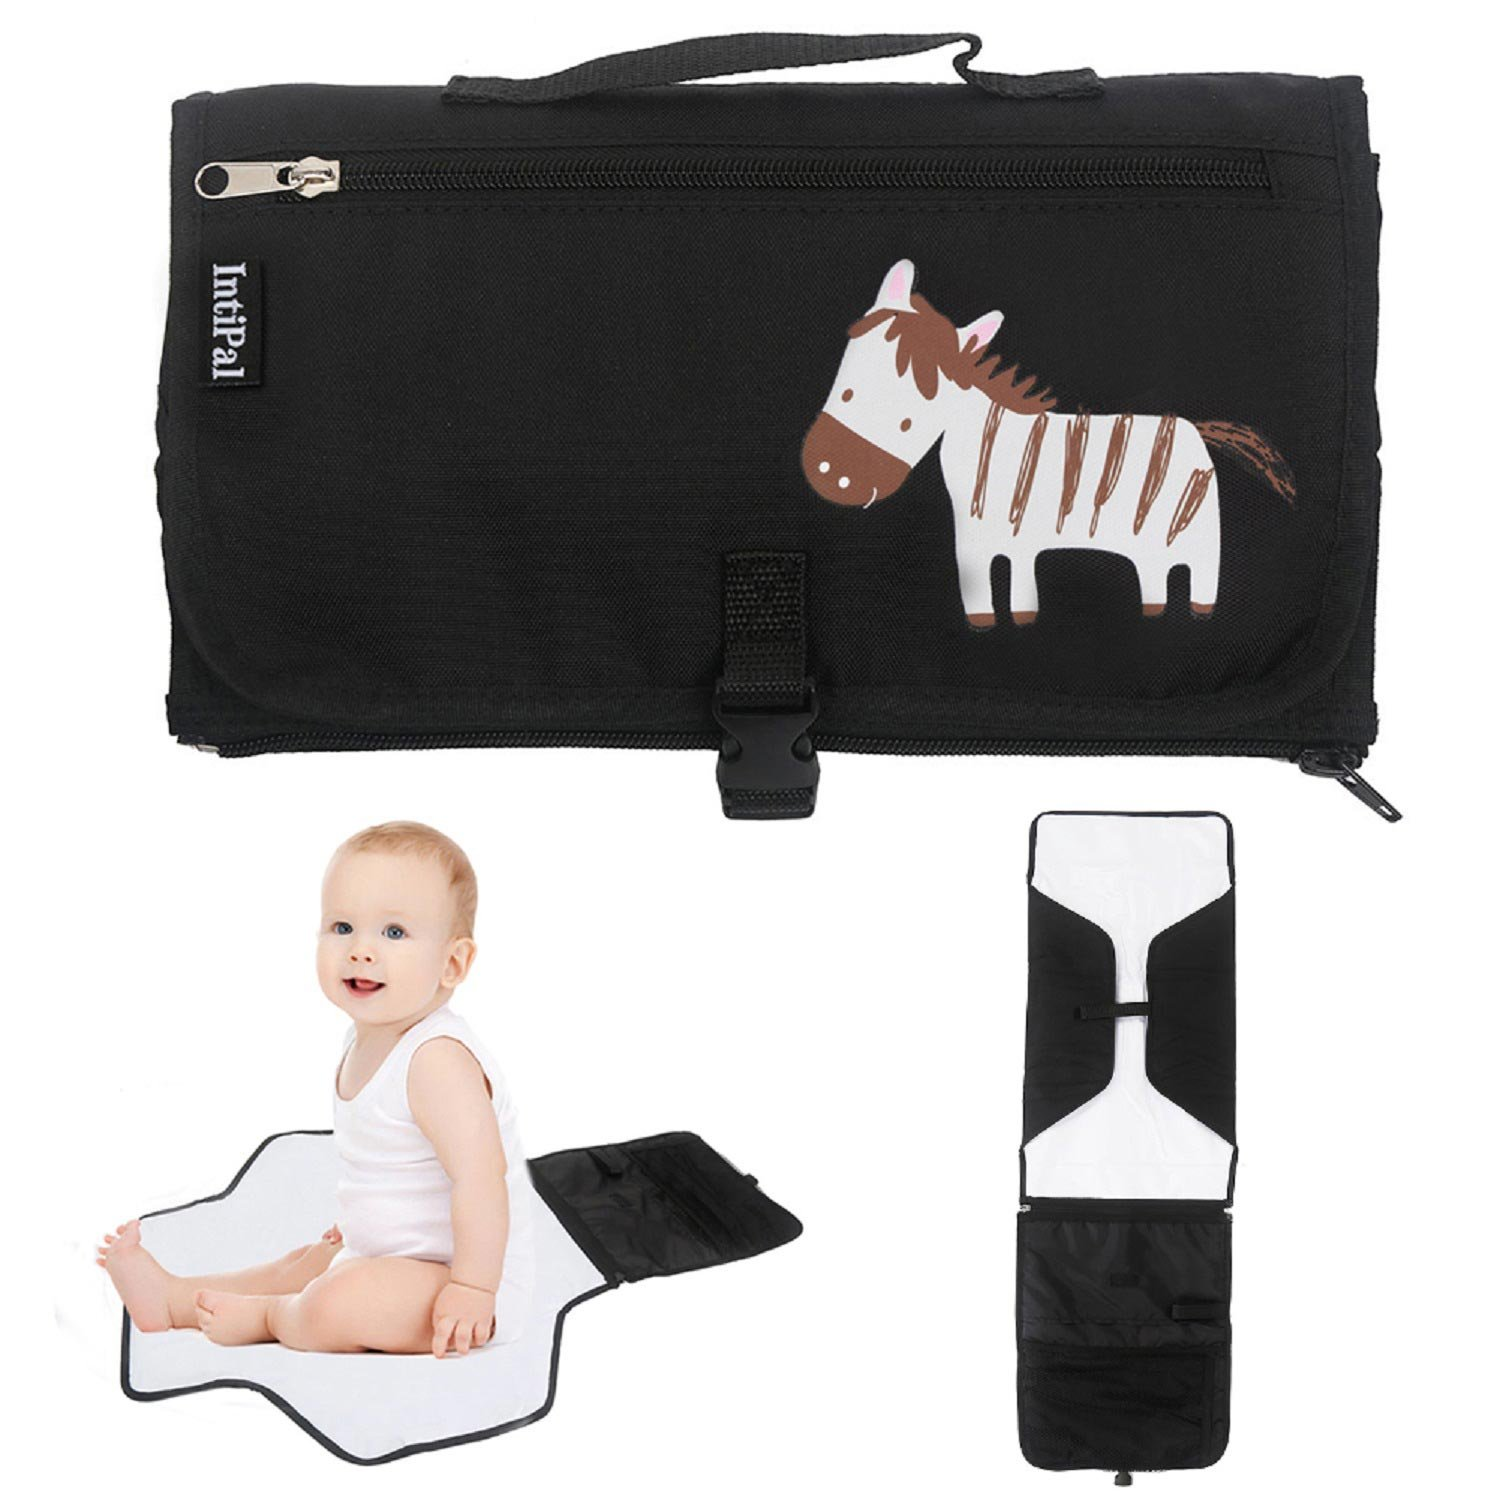 IntiPal Baby Diaper Changing Pad - Diaper Changing Mat with Storage Pockets - Portable Diaper Changing Station Kit Clutch for Travel and Home (Grey Zebra)